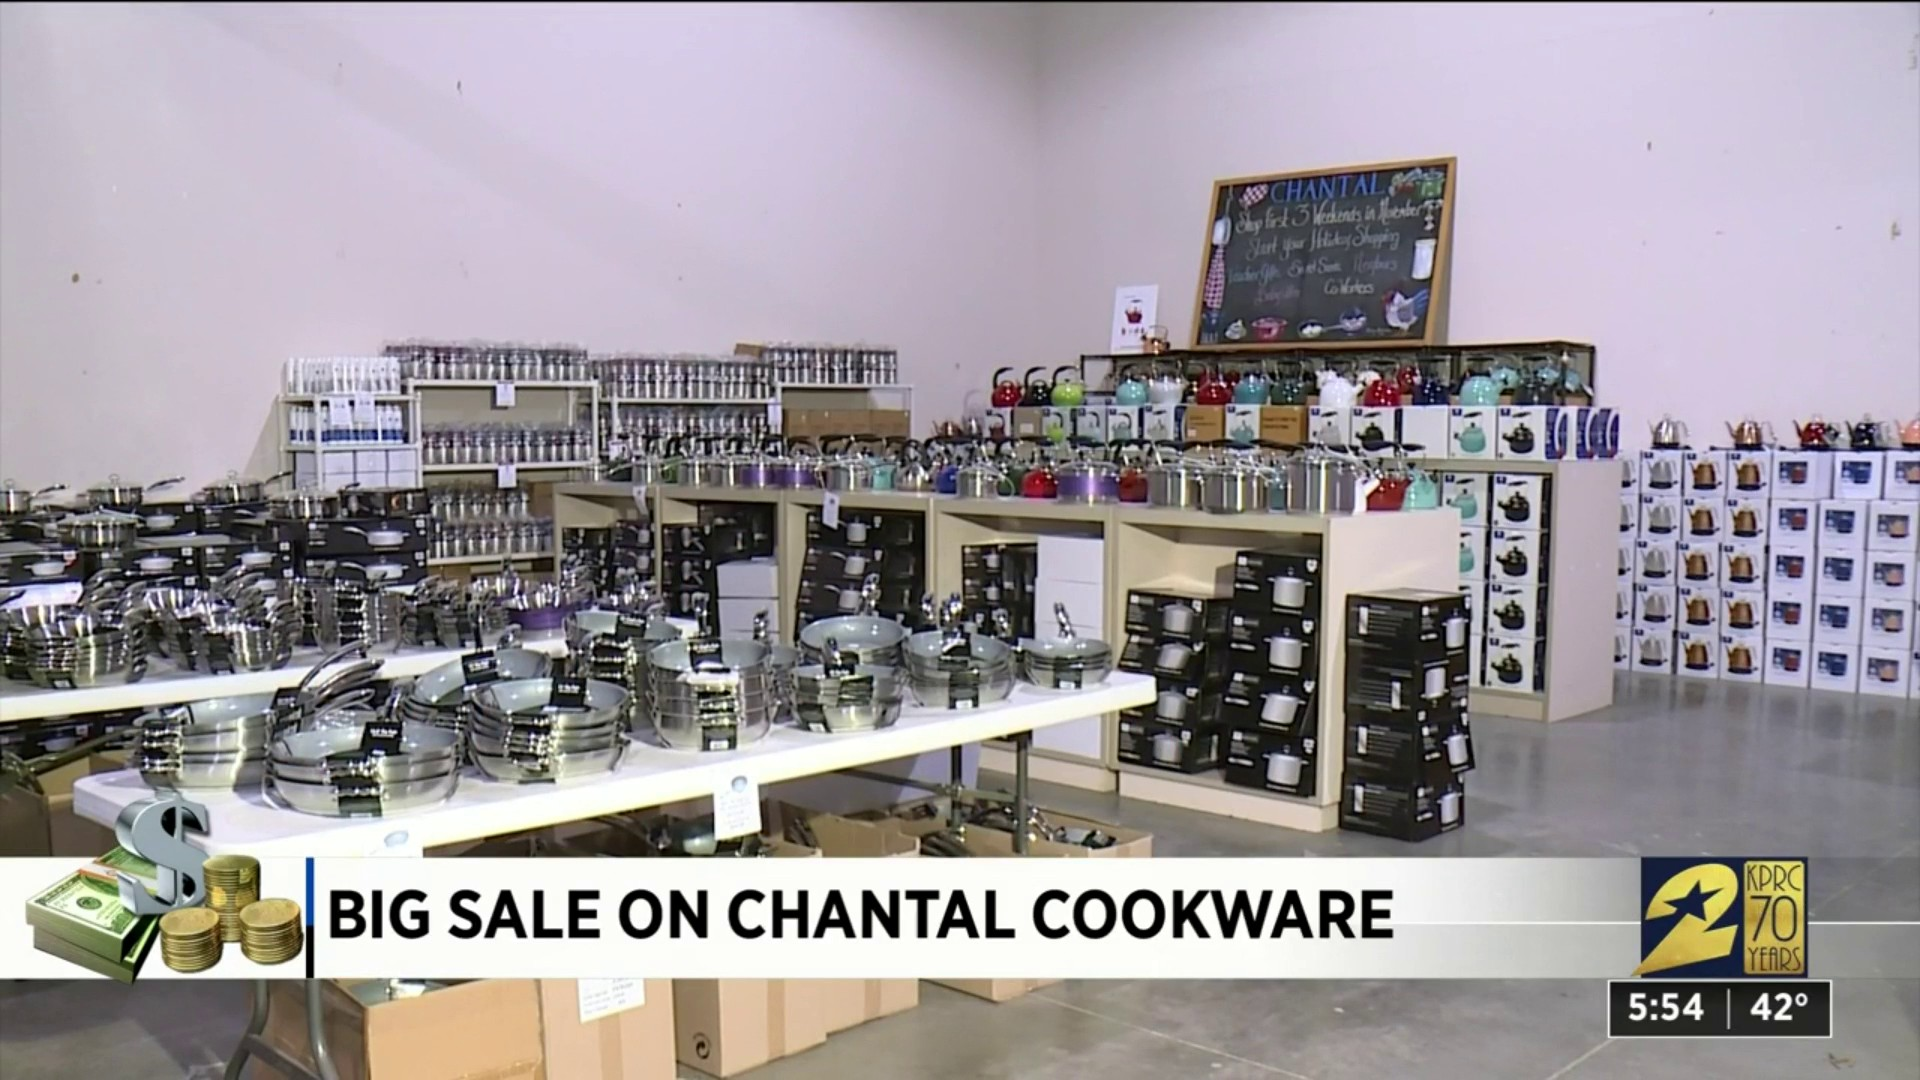 channel 2 visits warehouse link opens new window